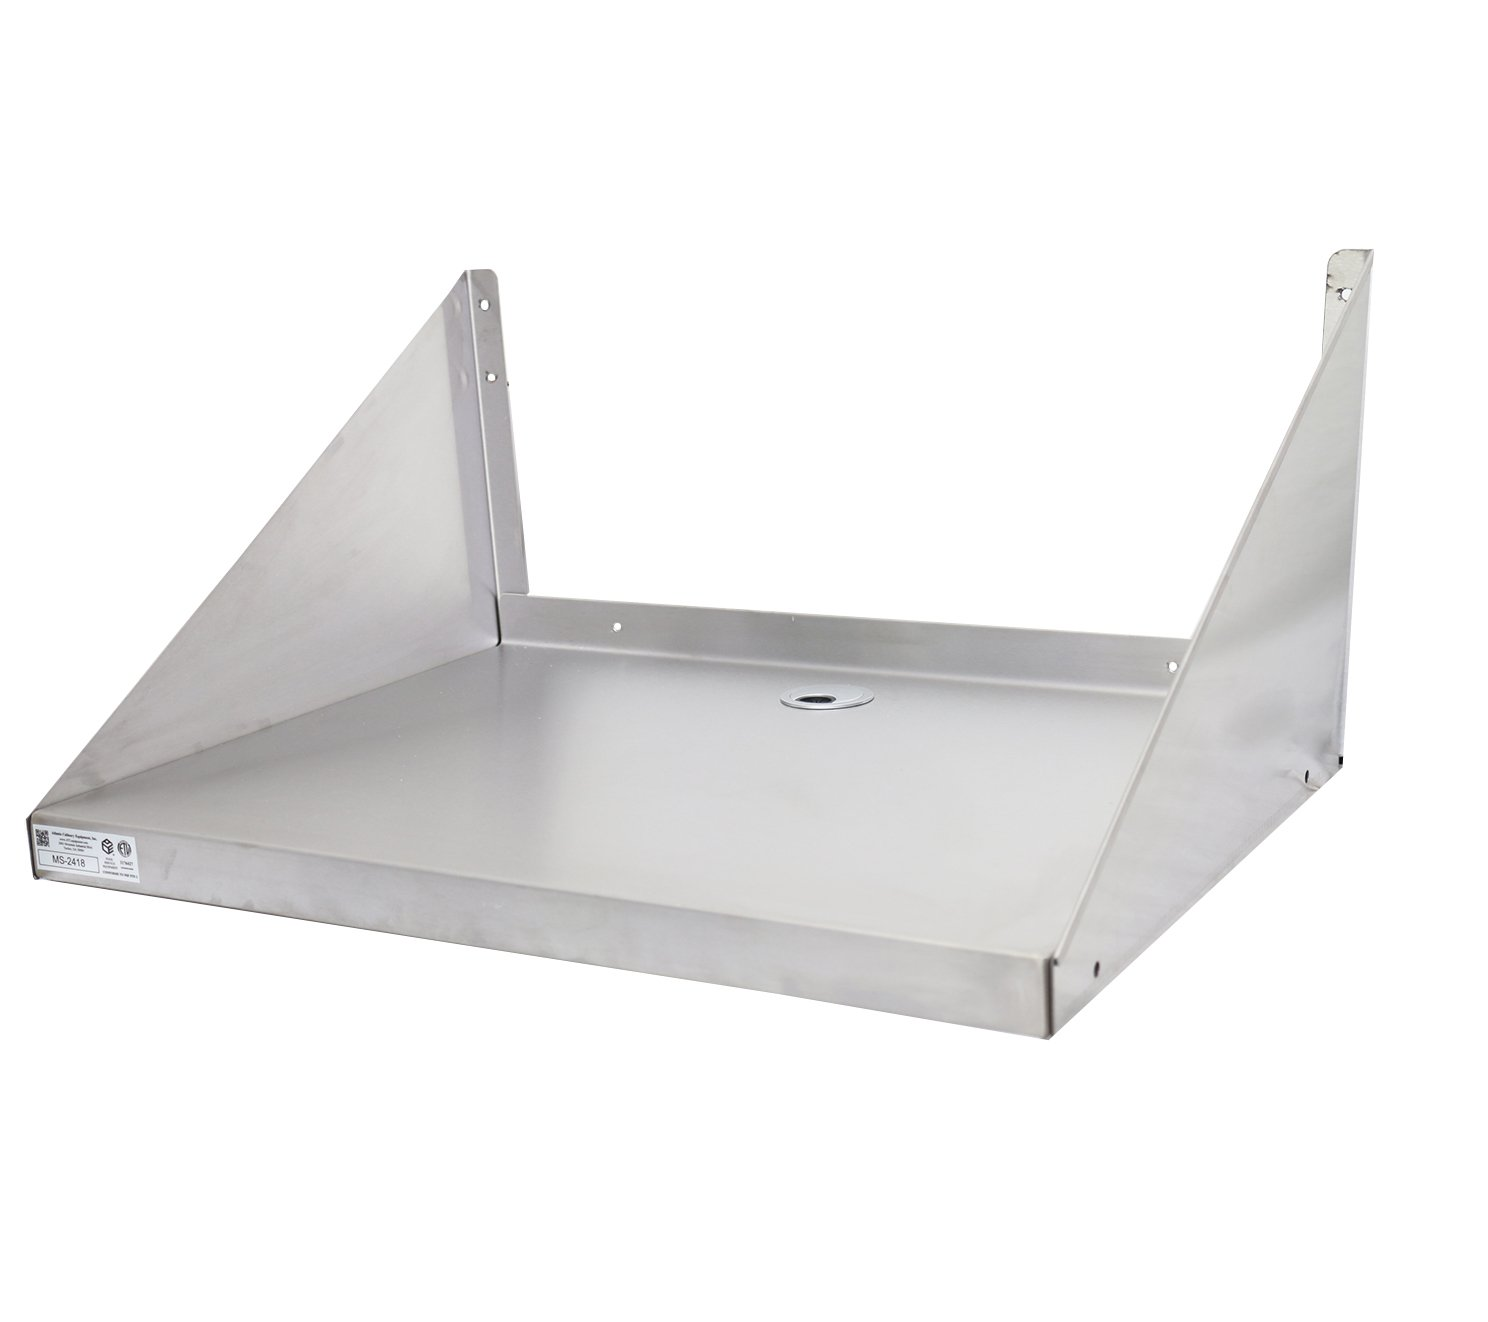 Stainless Steel Microwave Oven Wall Shelf 18''x18''